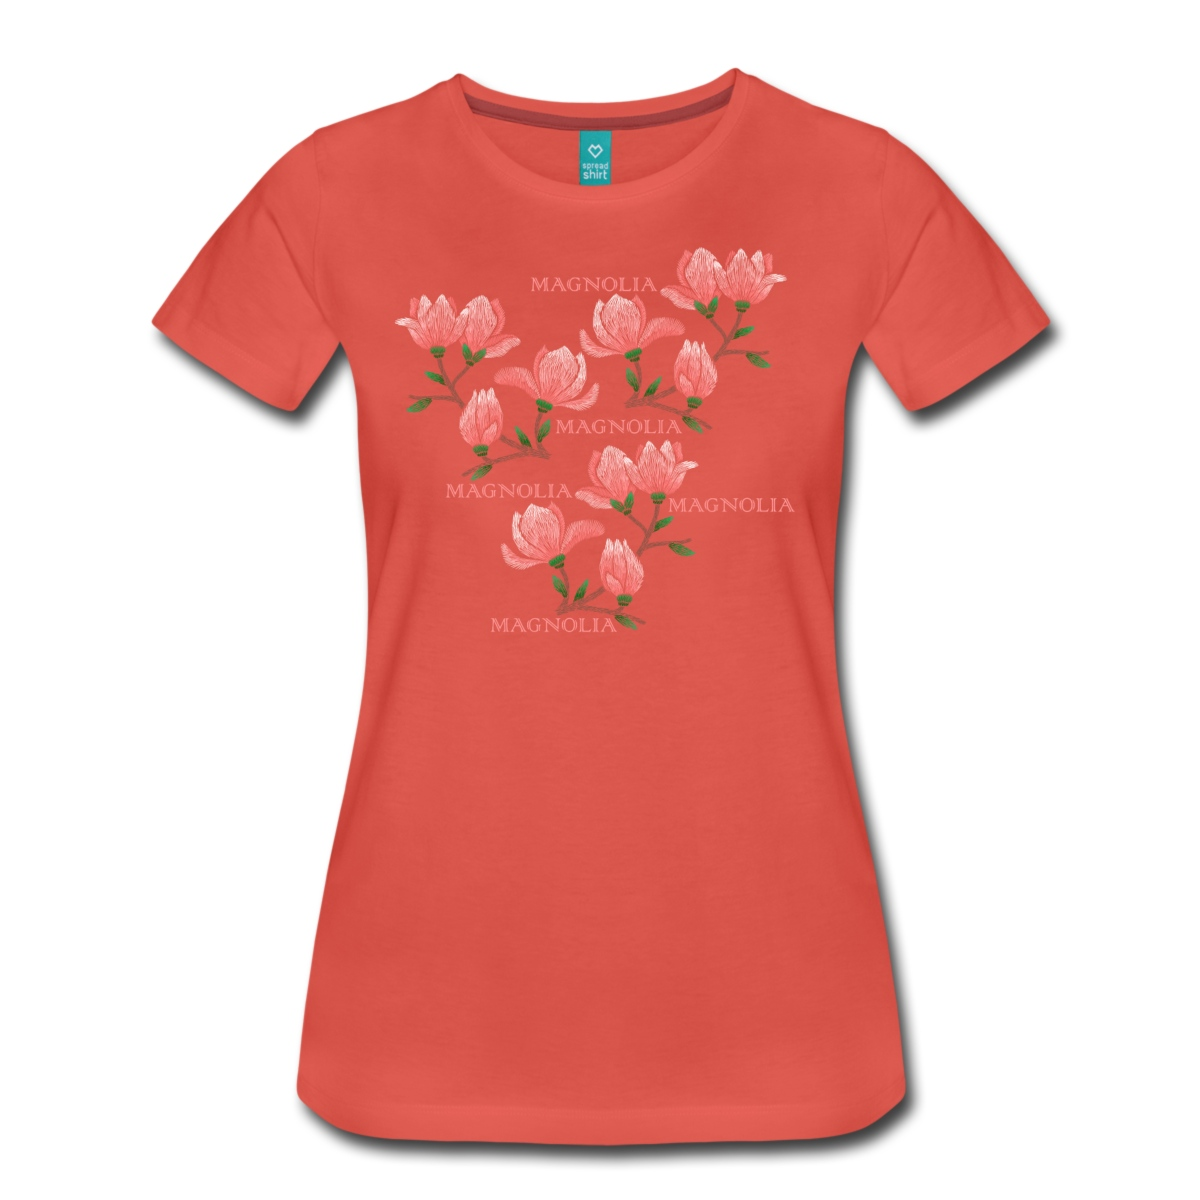 magnolia-premium-t-shirt-dam-orange.jpg